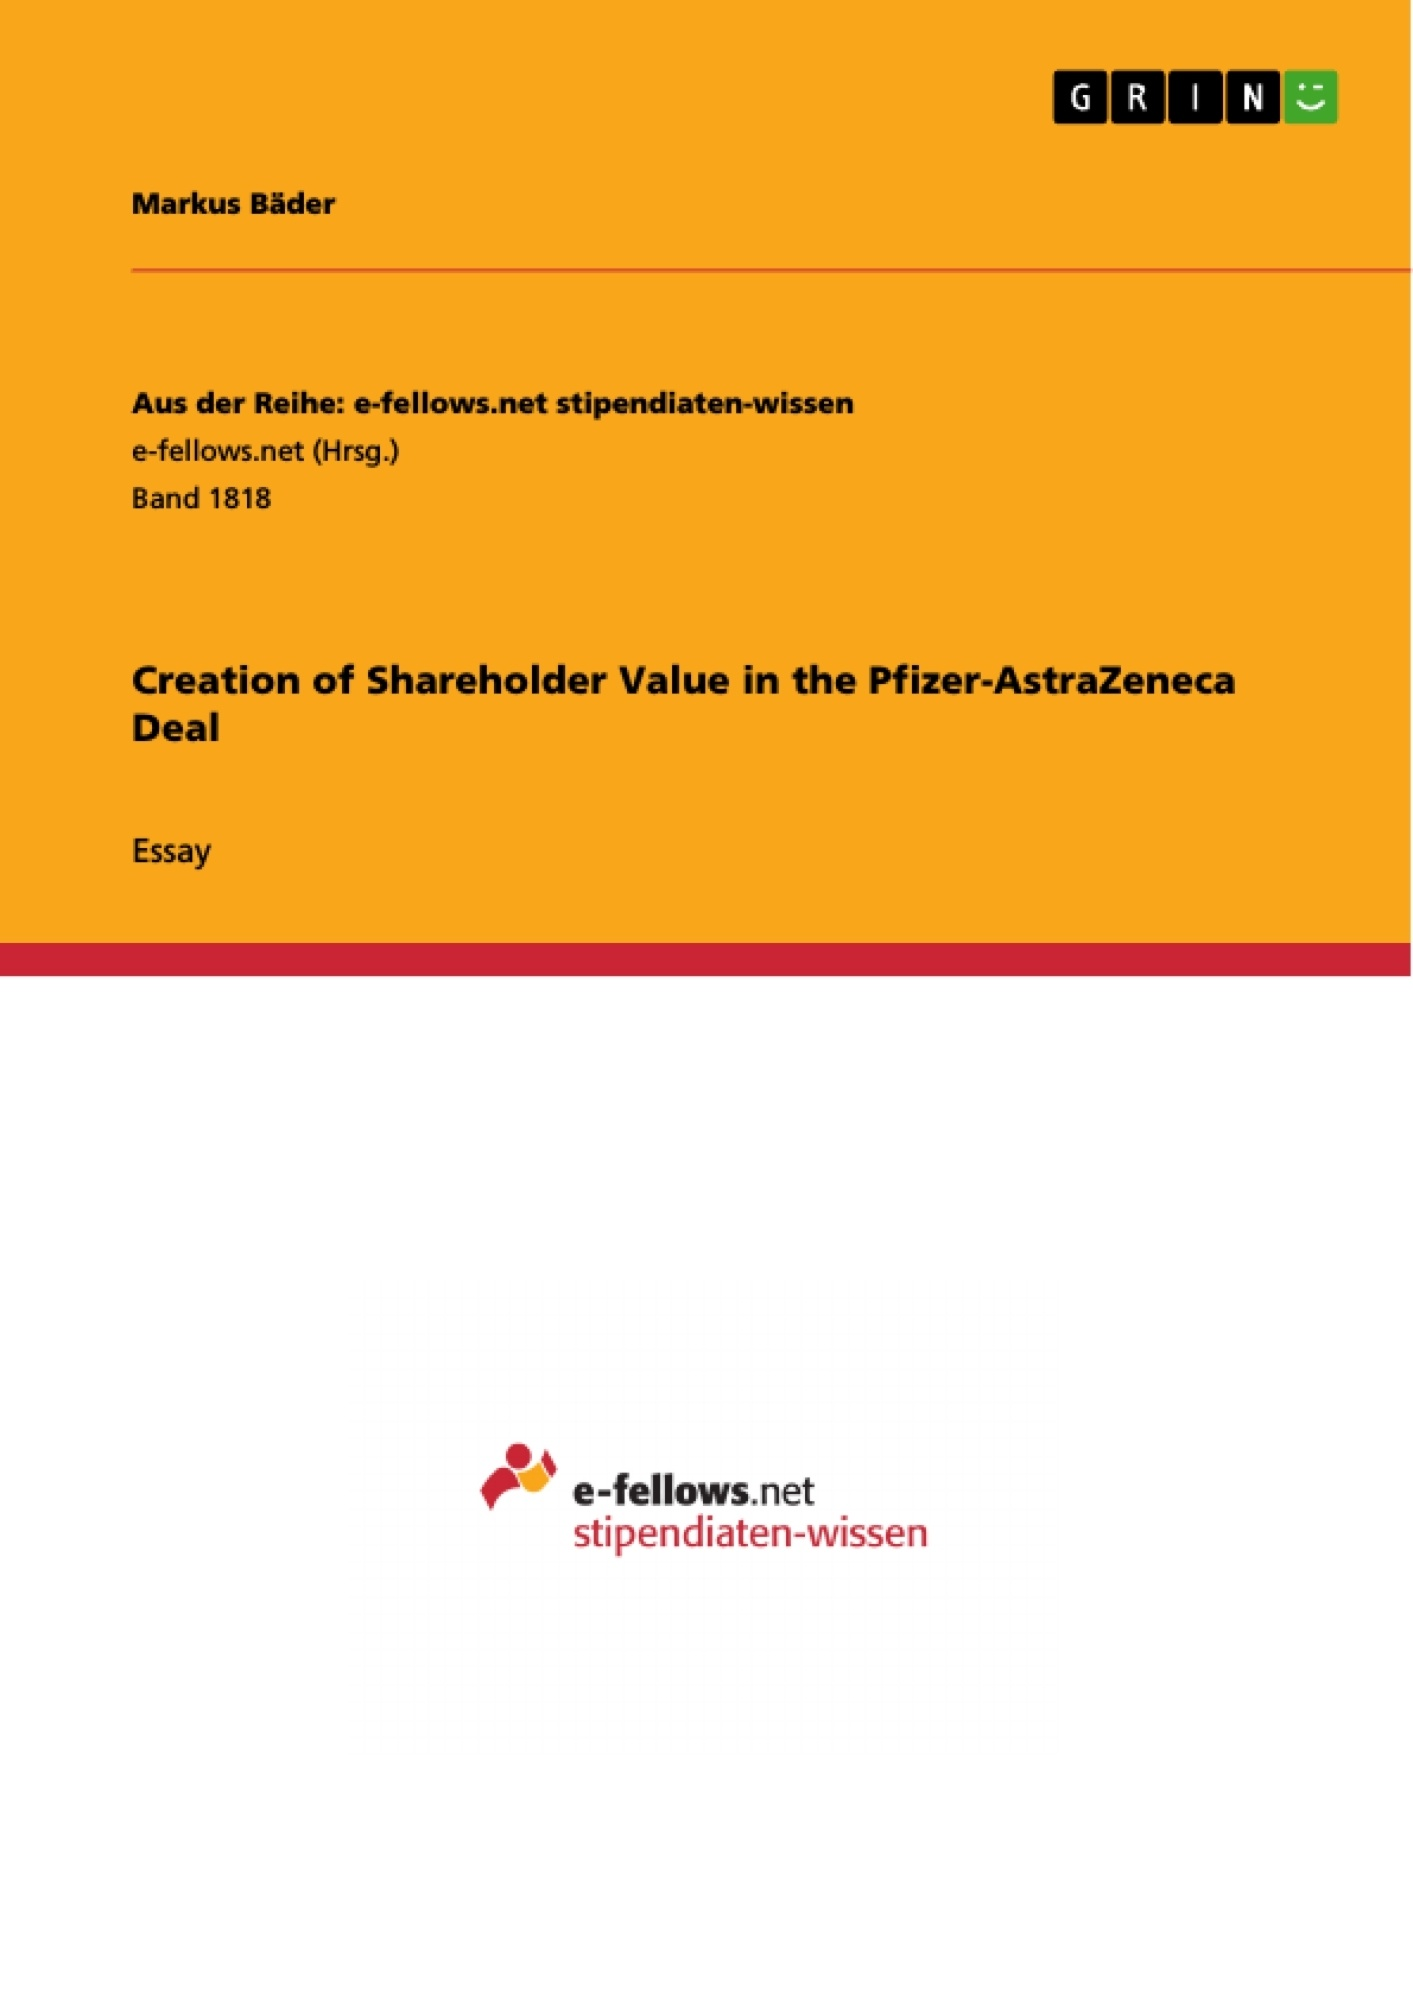 Title: Creation of Shareholder Value in the Pfizer-AstraZeneca Deal